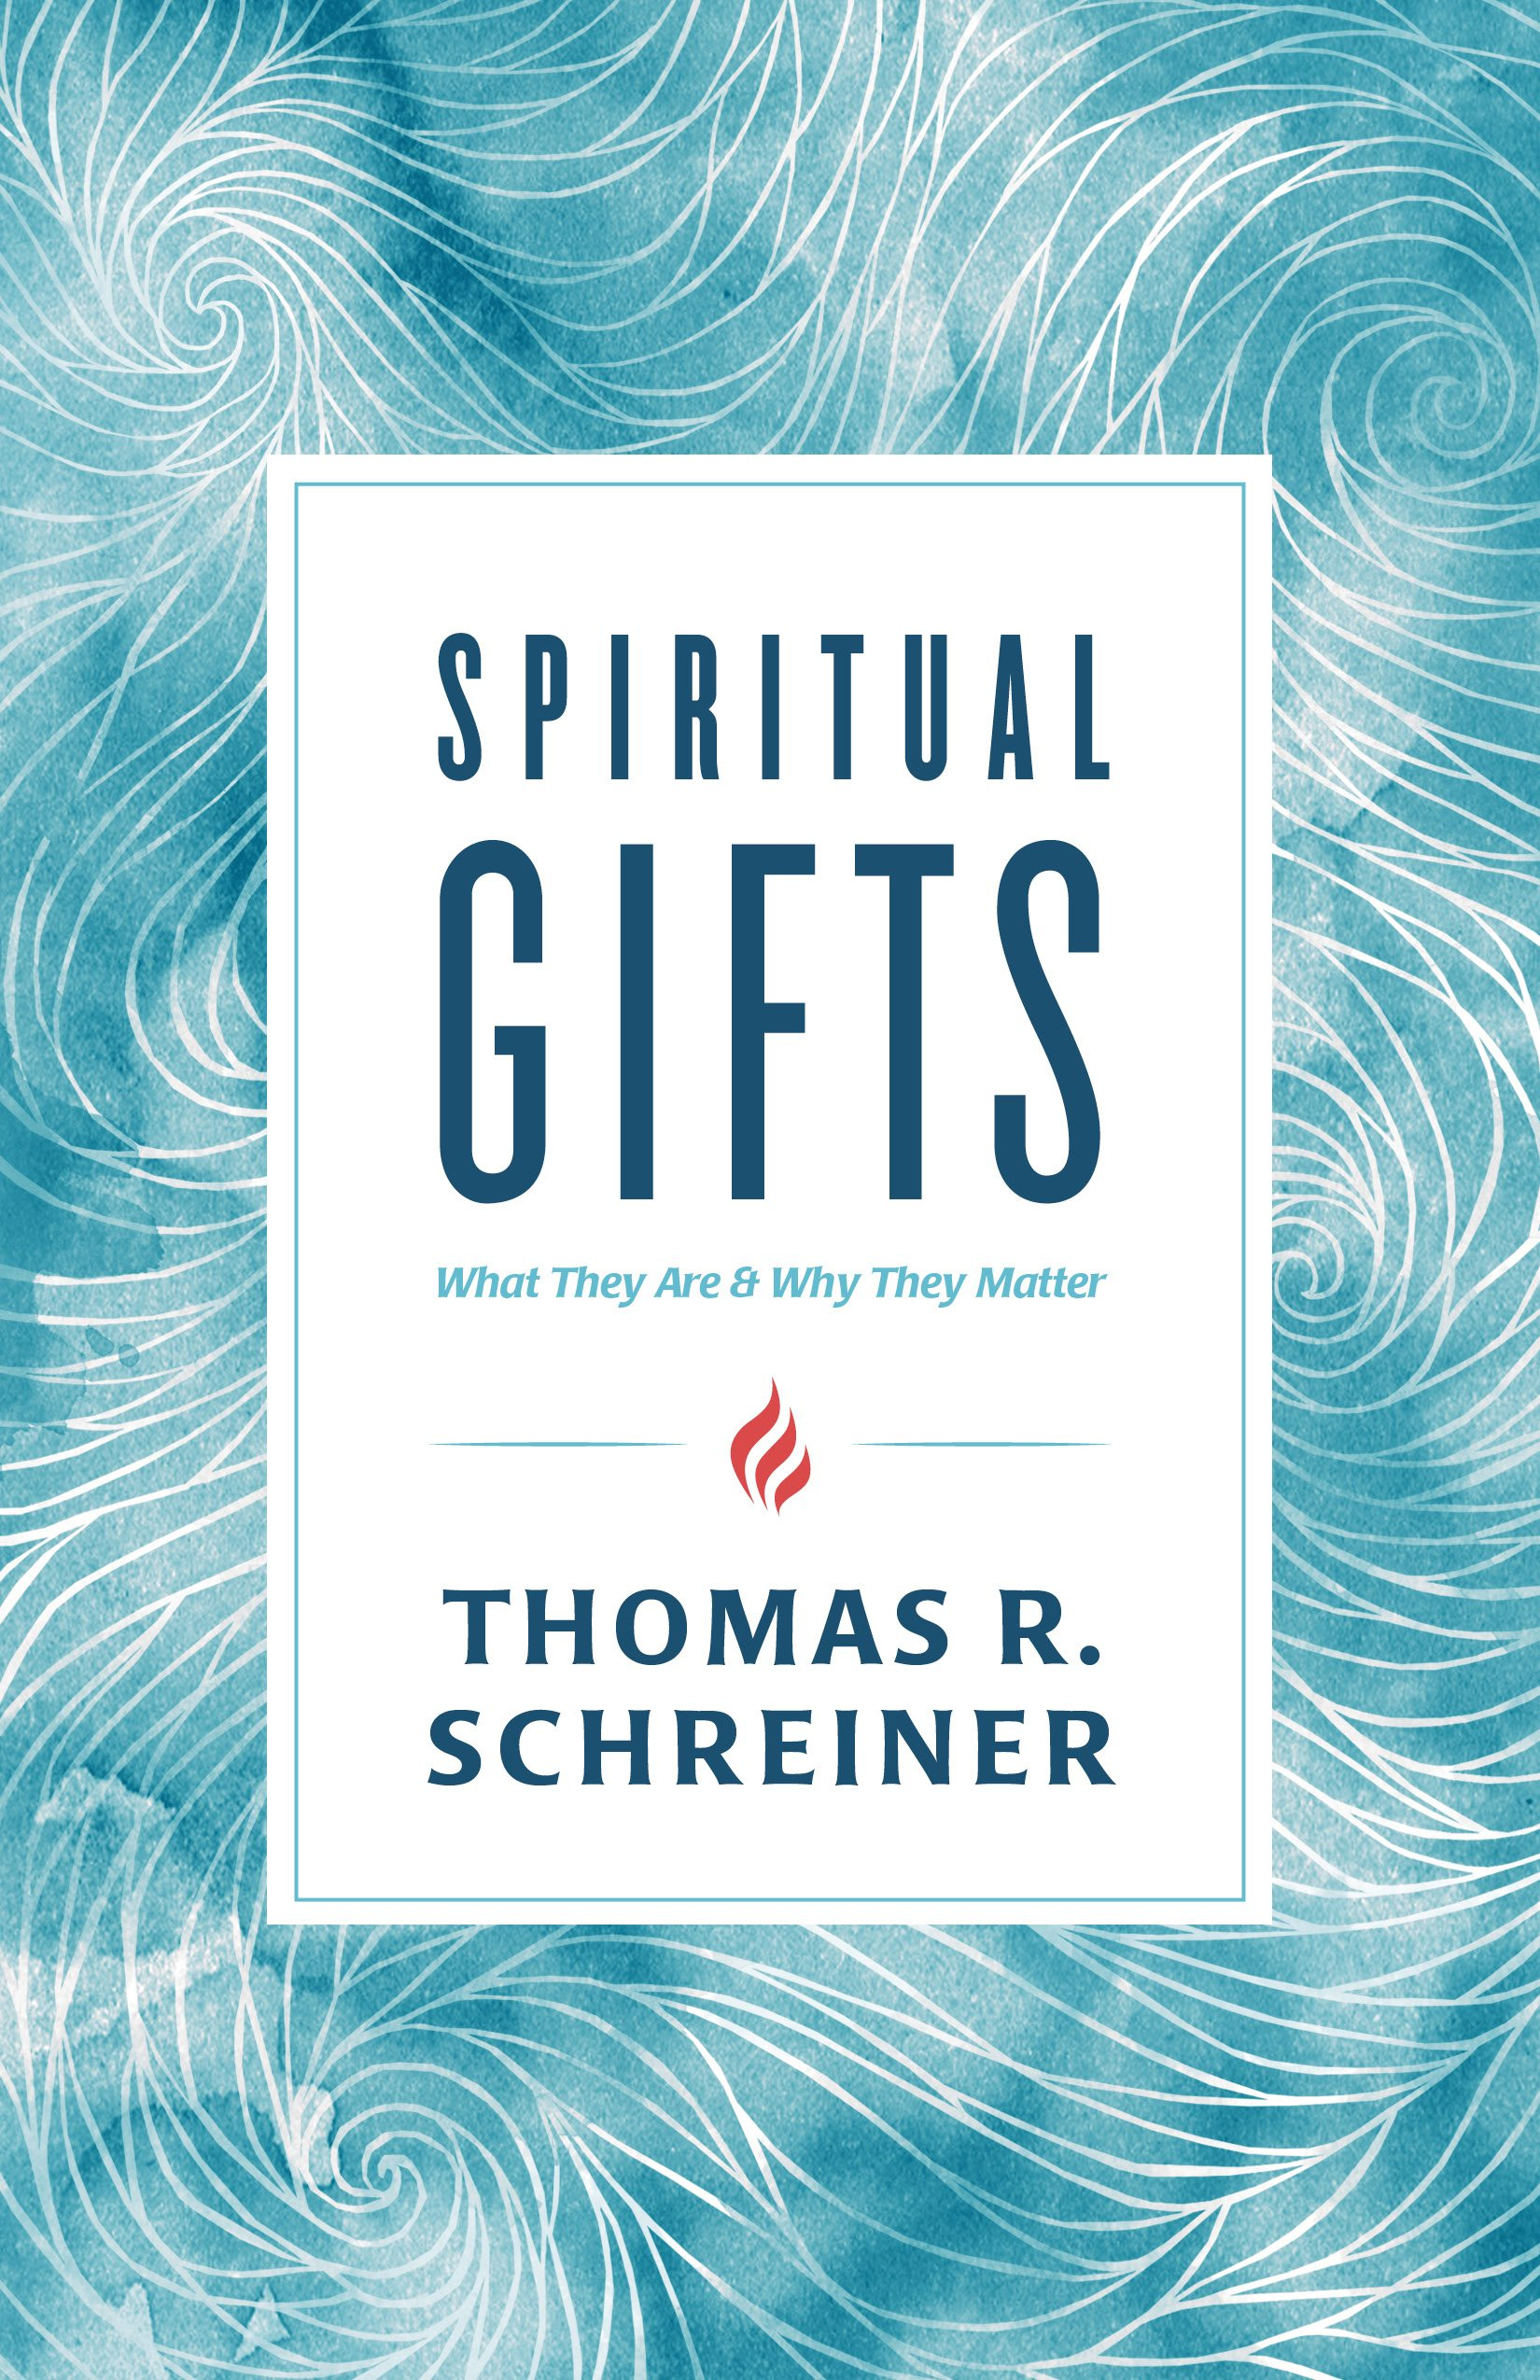 Spiritual gifts what they are and why they matter thomas r spiritual gifts what they are and why they matter thomas r schreiner 9781535915205 amazon books negle Choice Image